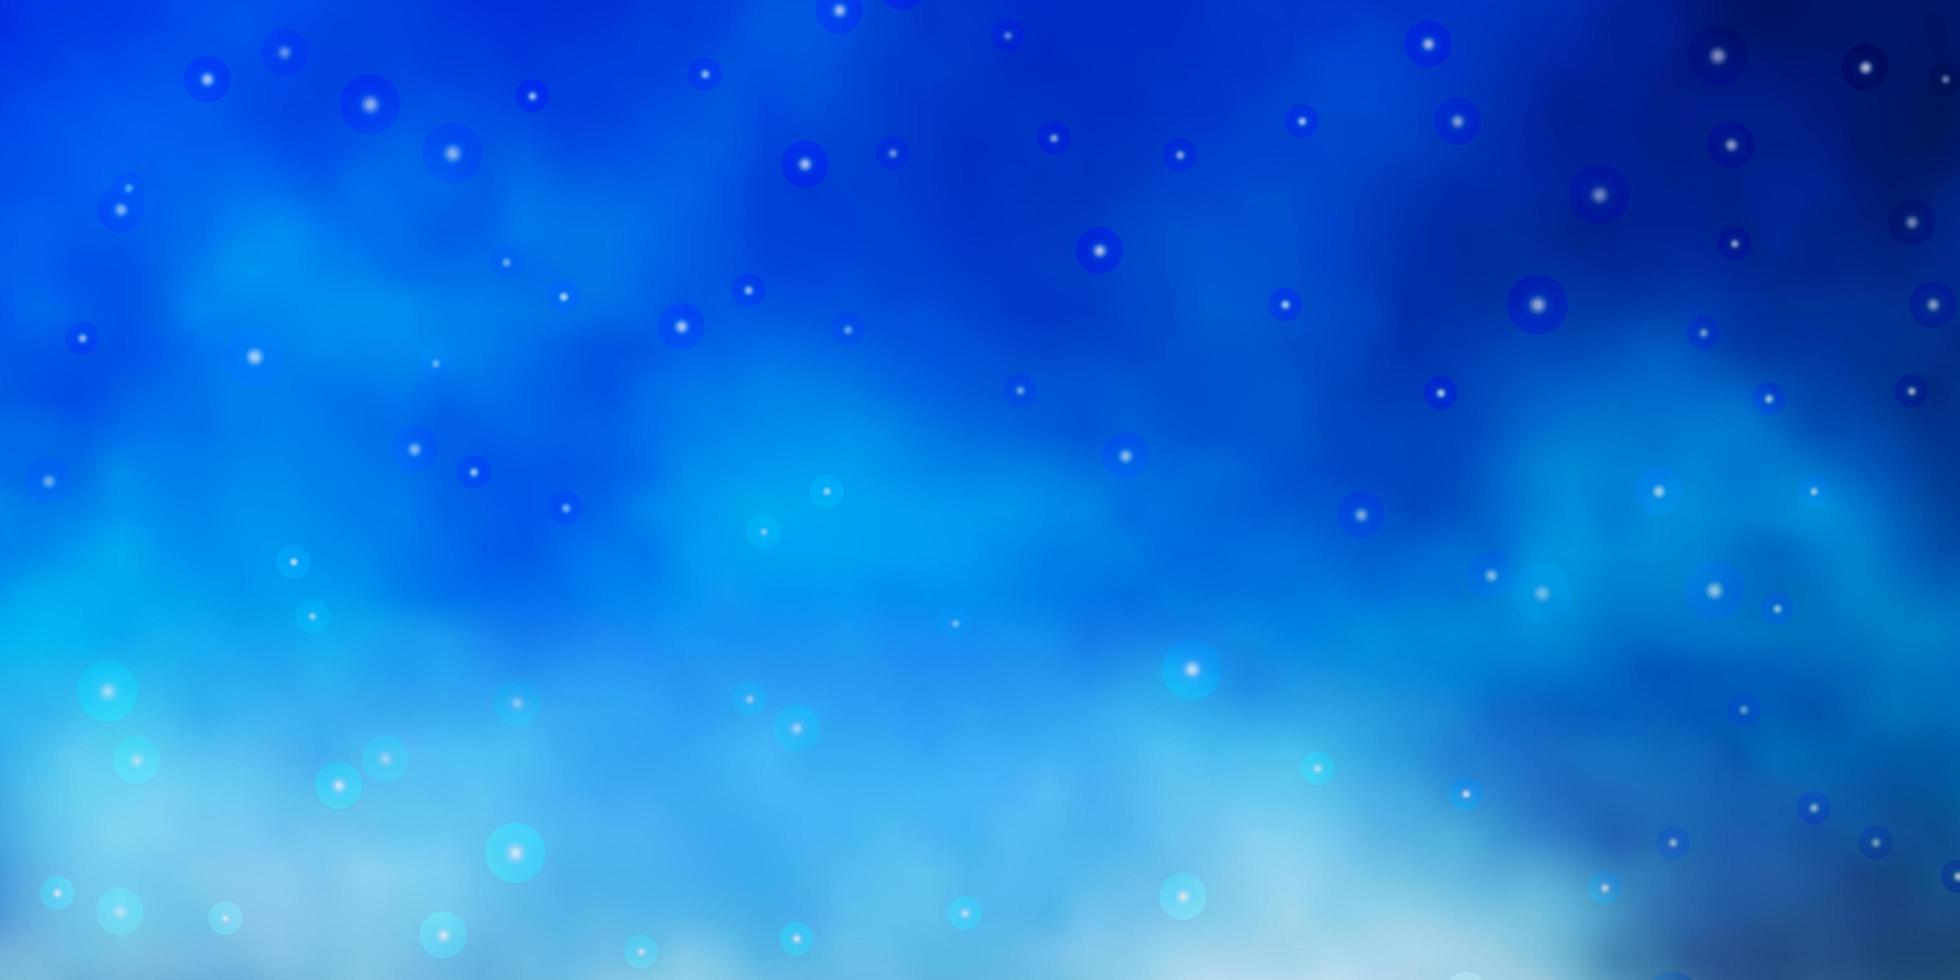 Blue background with colorful stars. vector